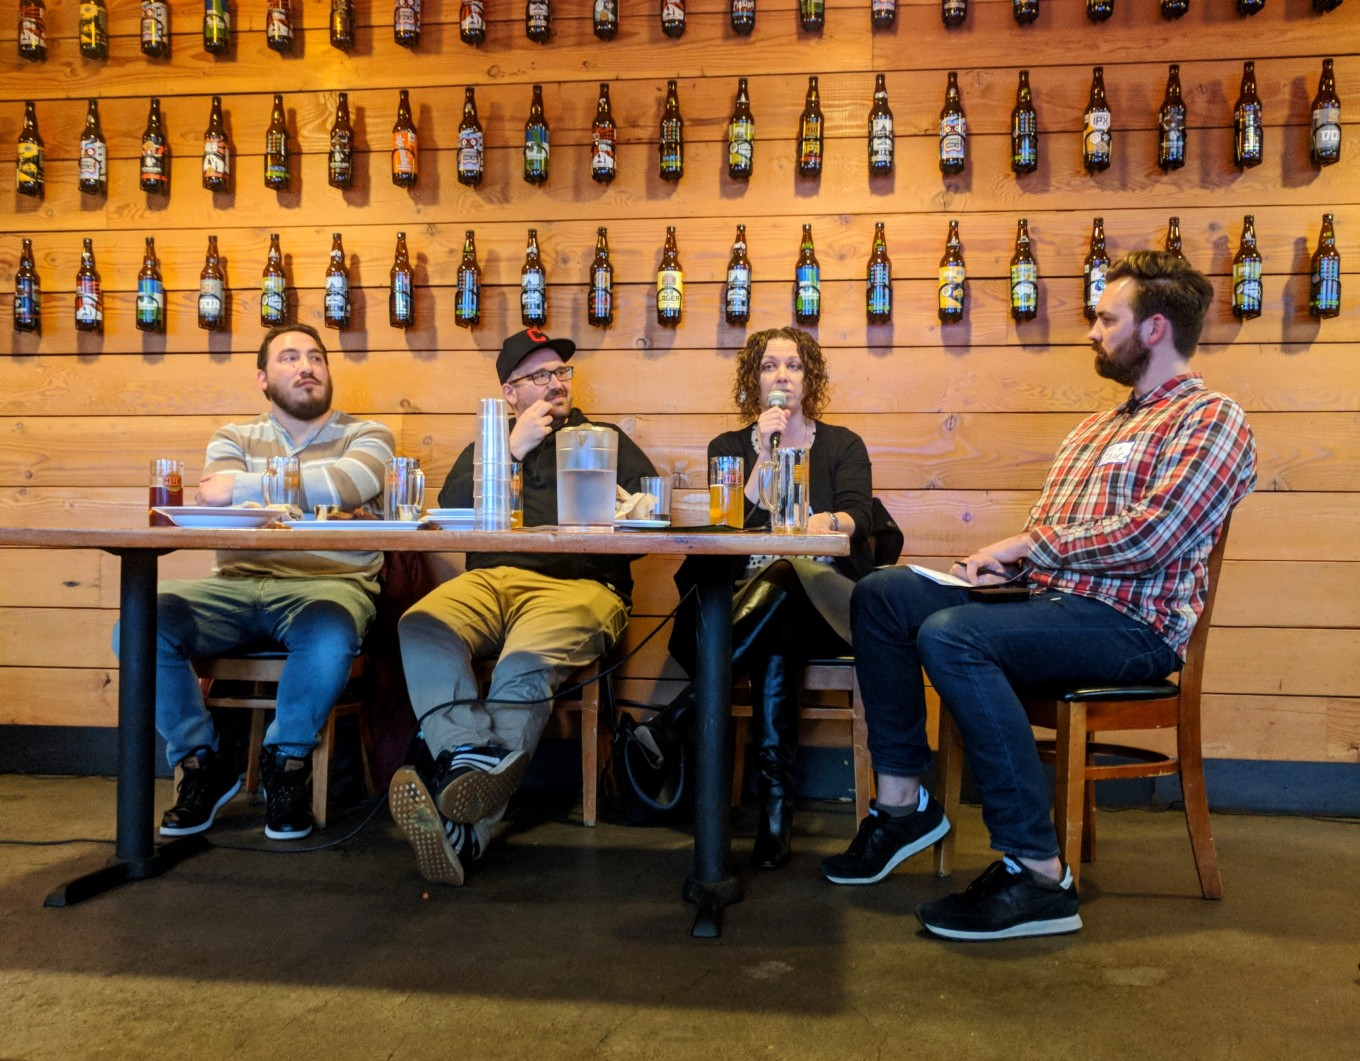 Harnessing the Power of the Press - Media and Beer